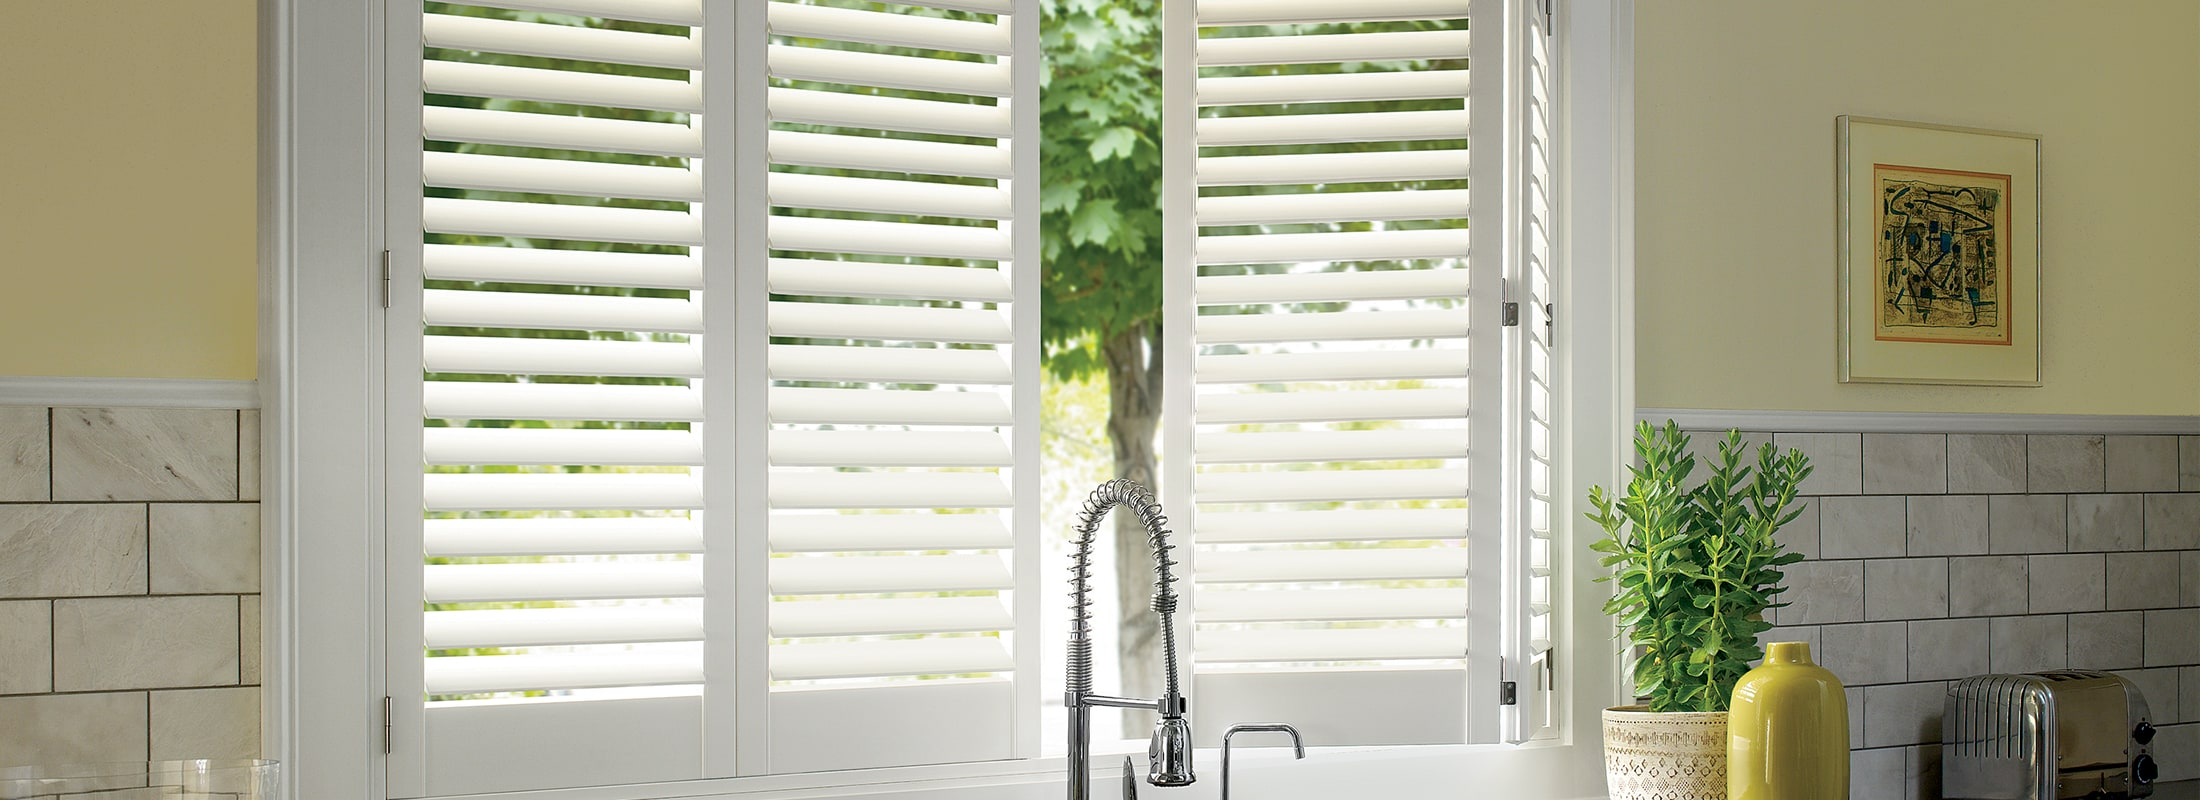 White shutters in Polysatin™ Bright White - Palm Beach